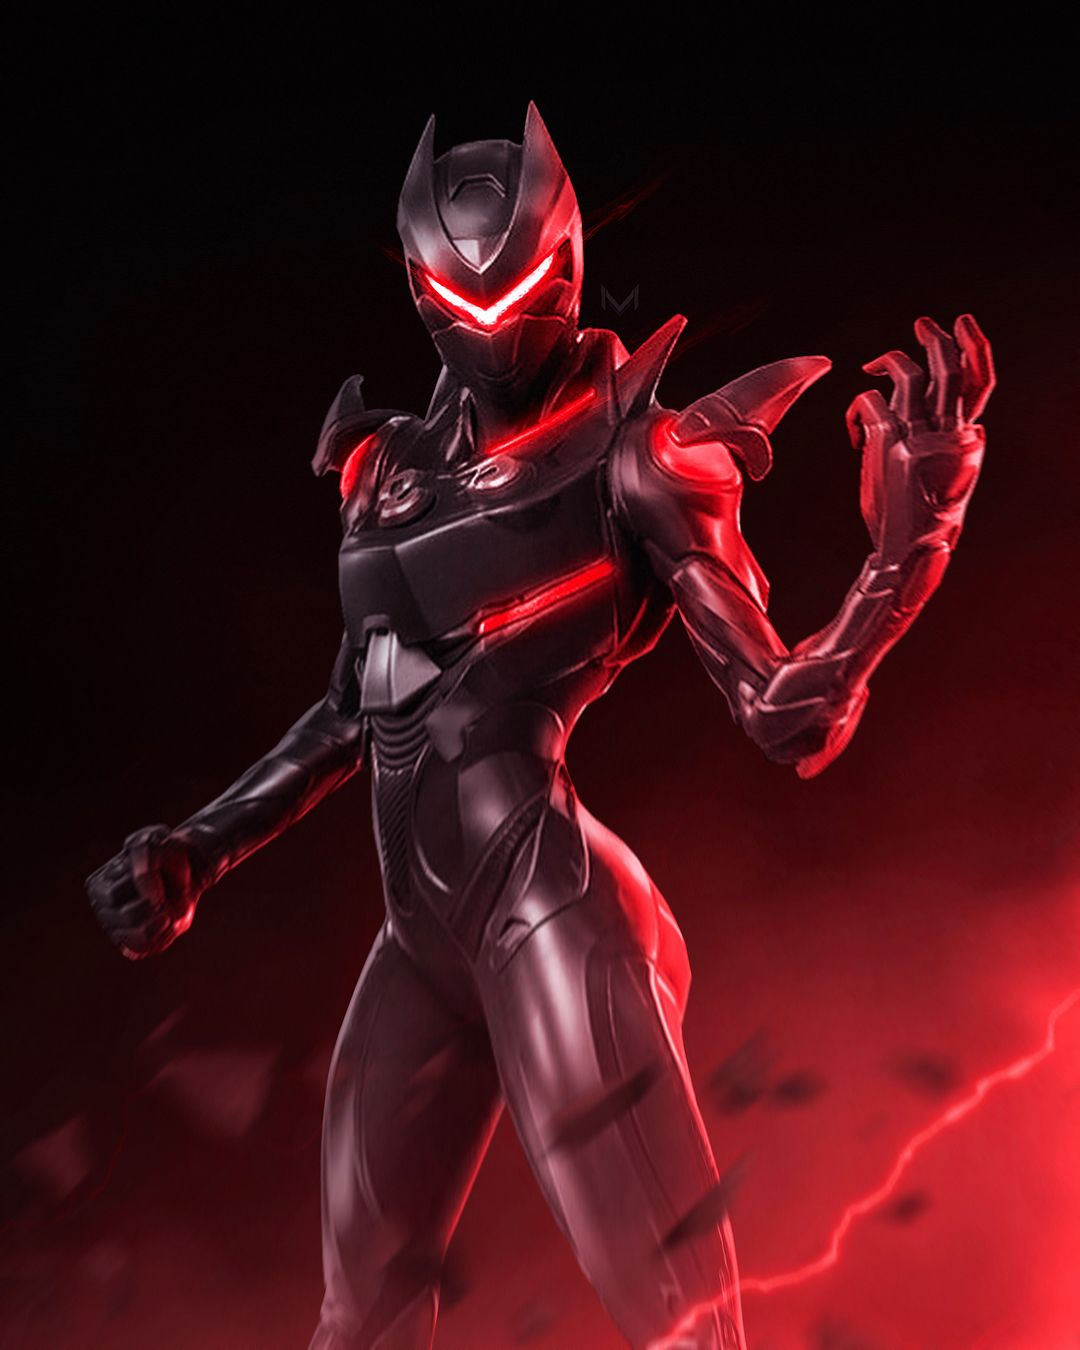 tag your fortnite squad duo hey everyone there has been a leak going around relating to the upcoming fortnite skins and this one - berserk armor fortnite